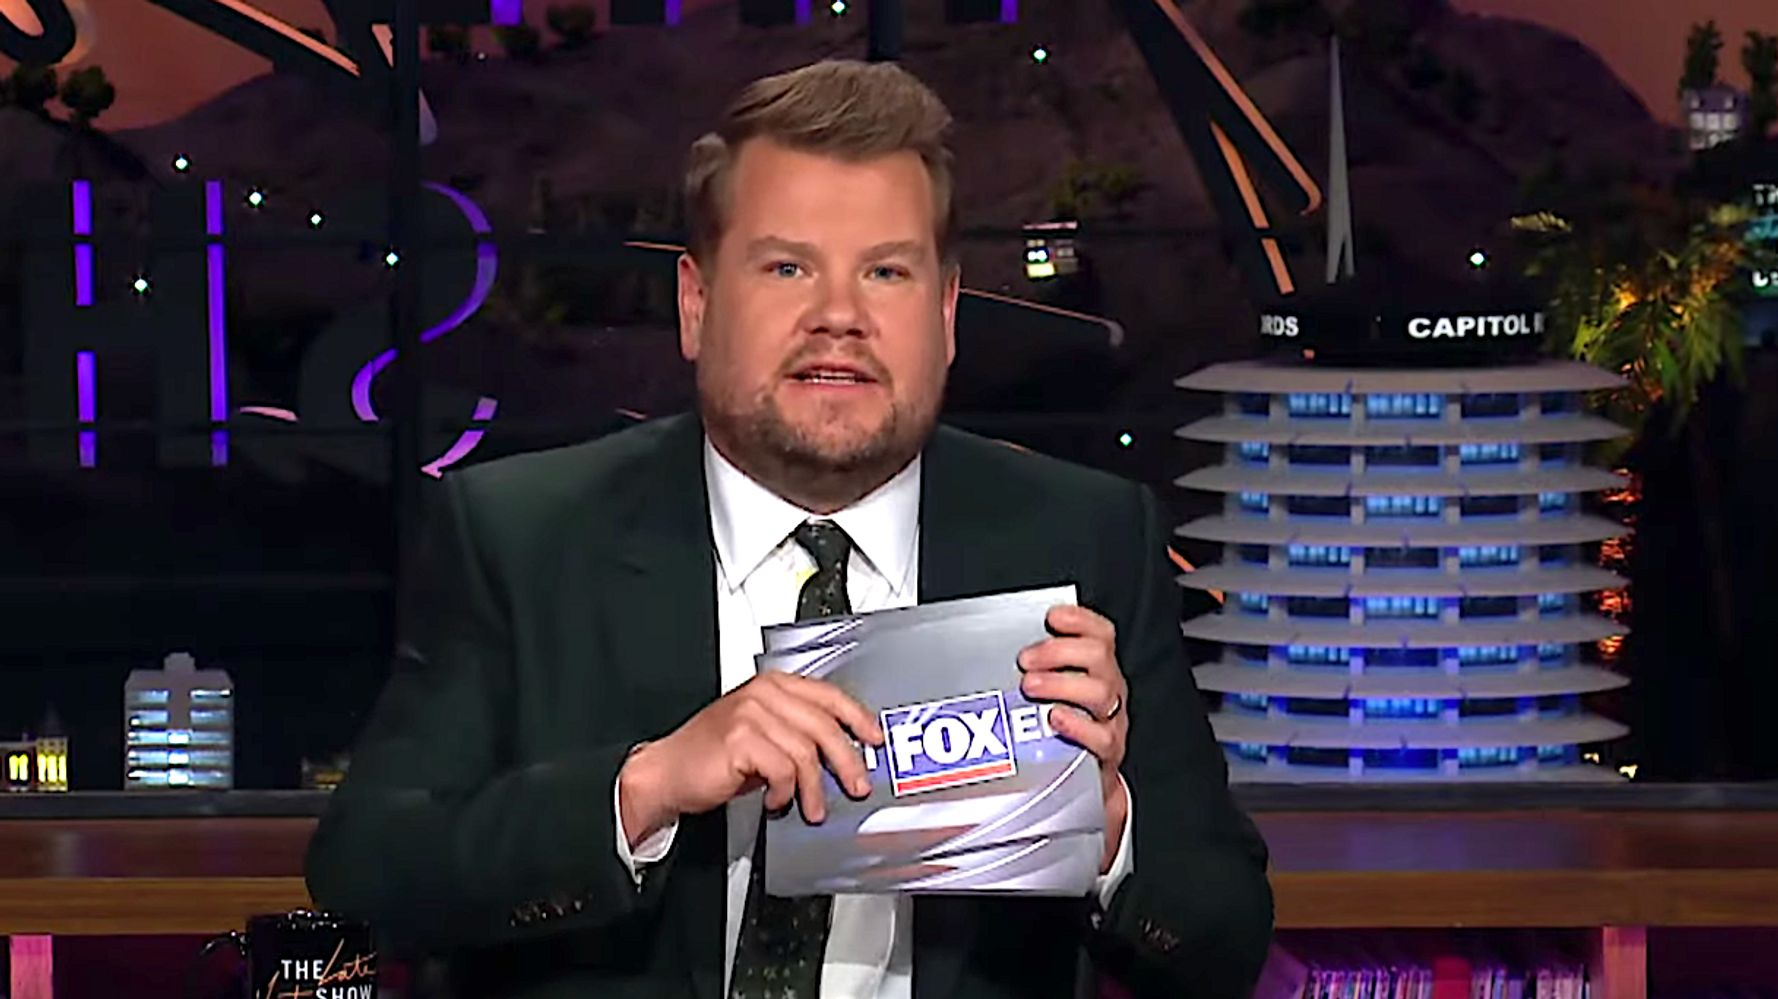 James Corden Savagely Rewrites Headlines For Fox News